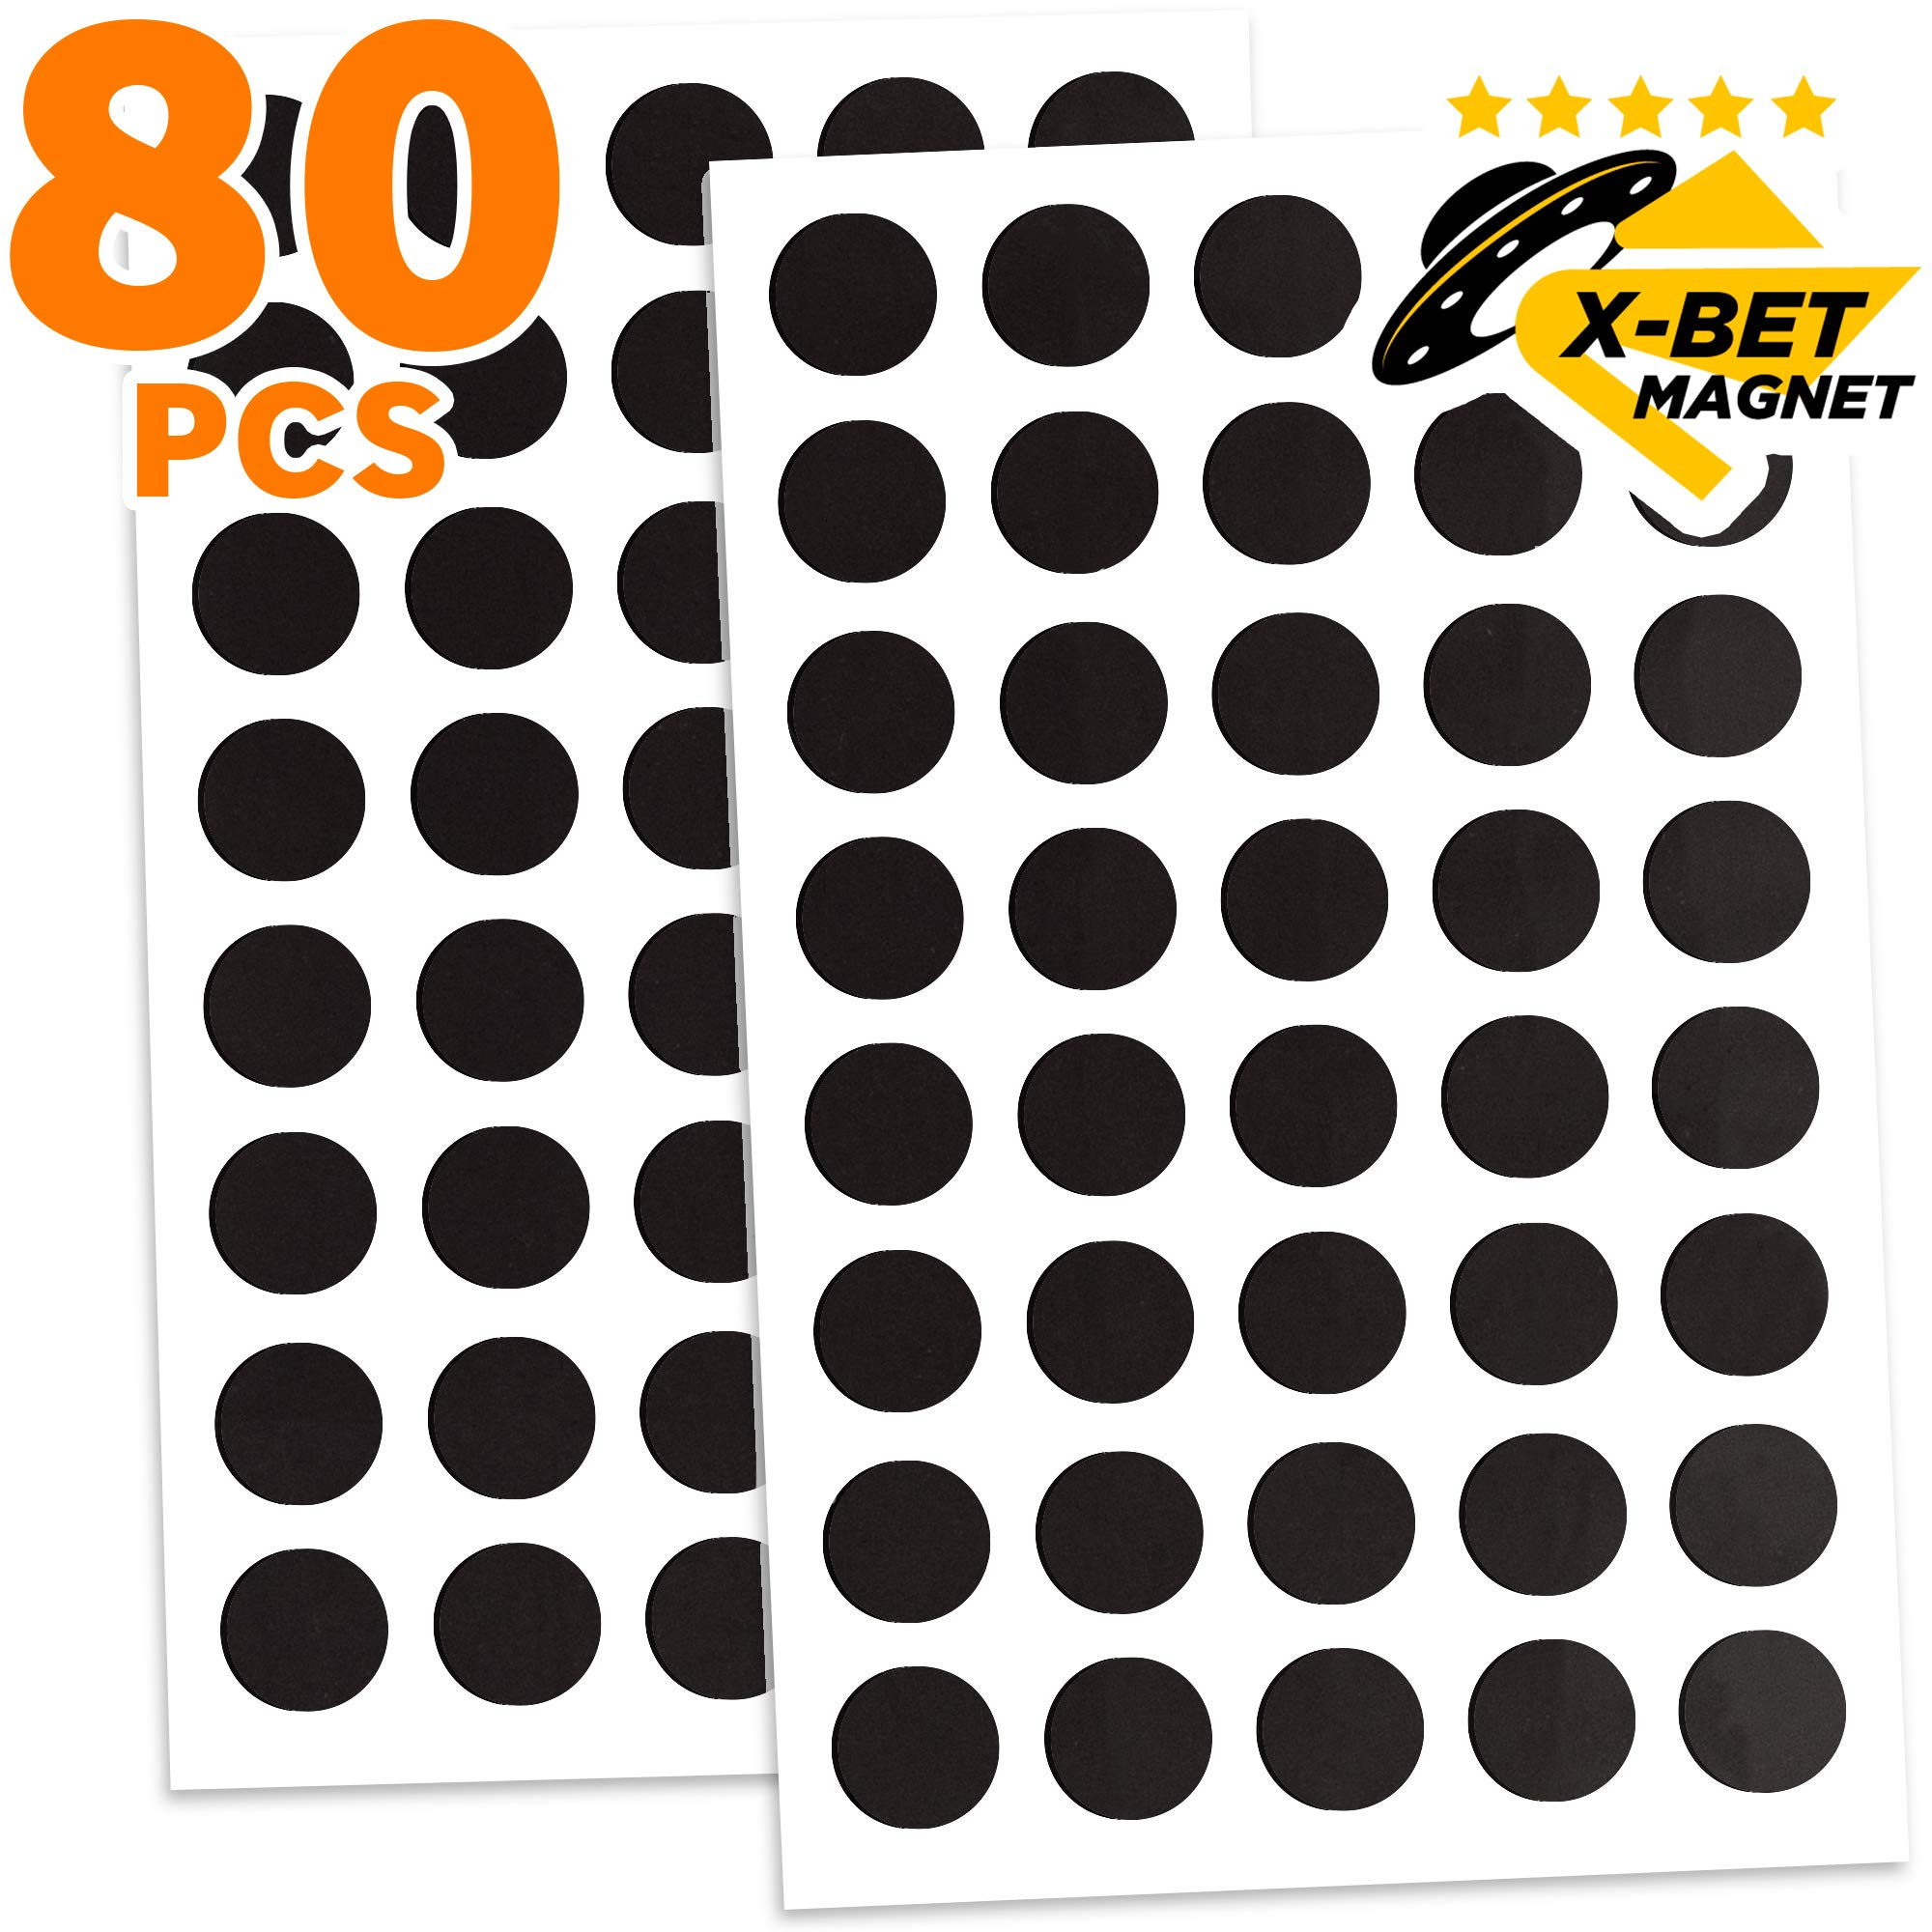 20mm//0.79in Diameter Nylon Hook /& Loop Sticky Back Coins Sticky Glue Dot Arts /& Crafts Tape Perfect for School Projects Classroom Office Home AUTENS Self Adhesive Dots 1500 Pieces 750 Pair Sets